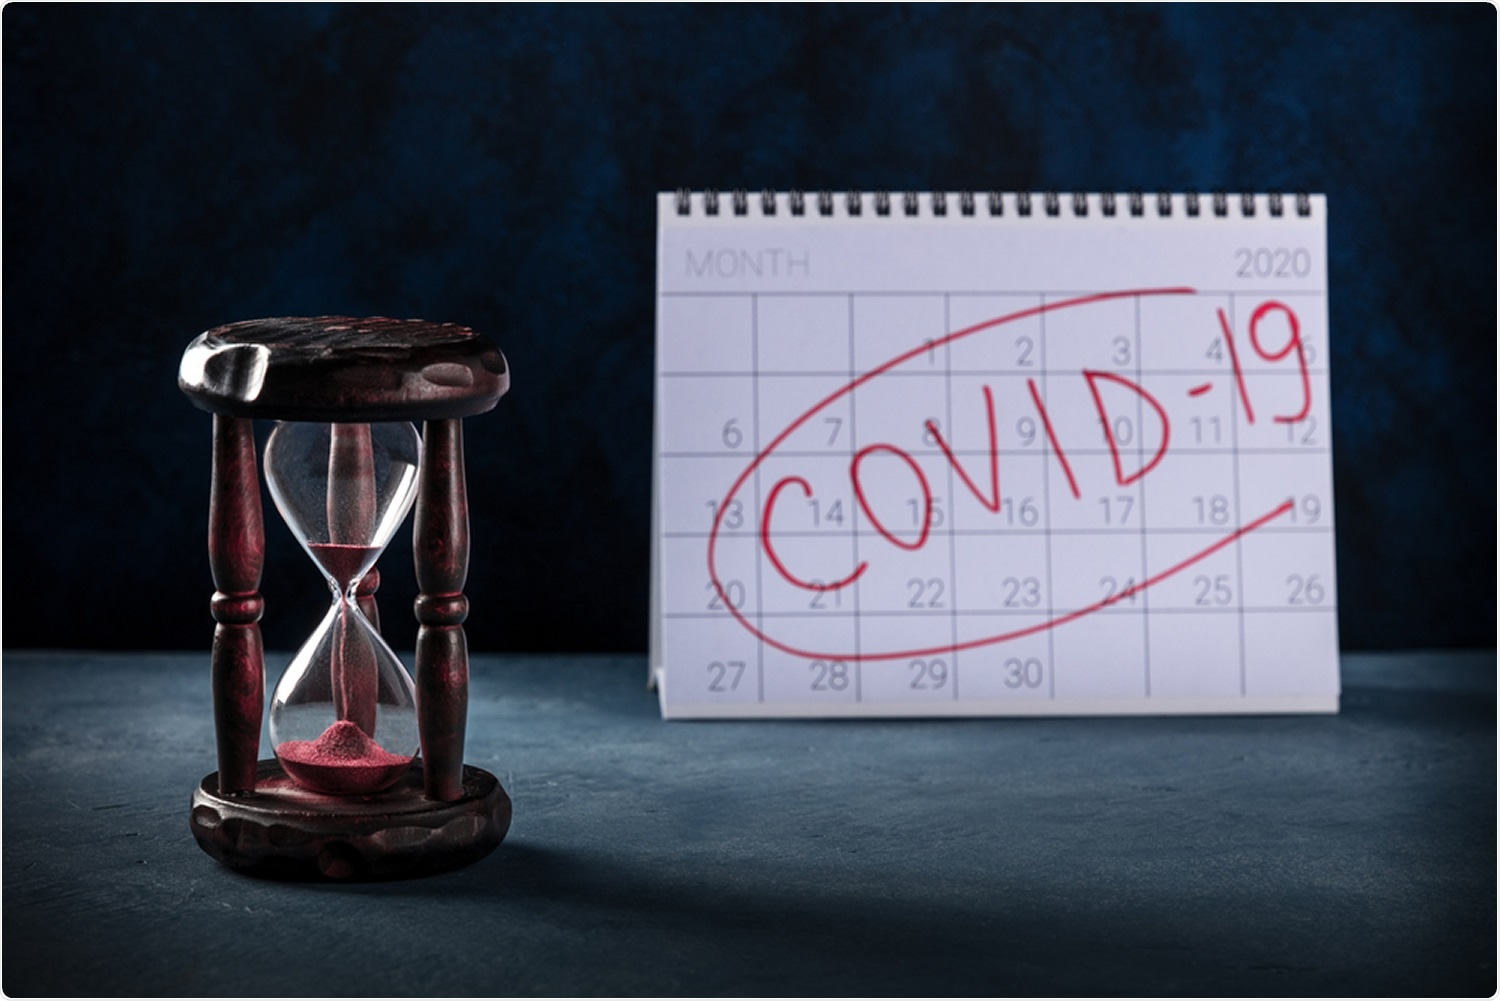 Study: Prevalence of long-term effects in individuals diagnosed with COVID-19: a living systematic review. Image Credit: Plateresca / Shutterstock